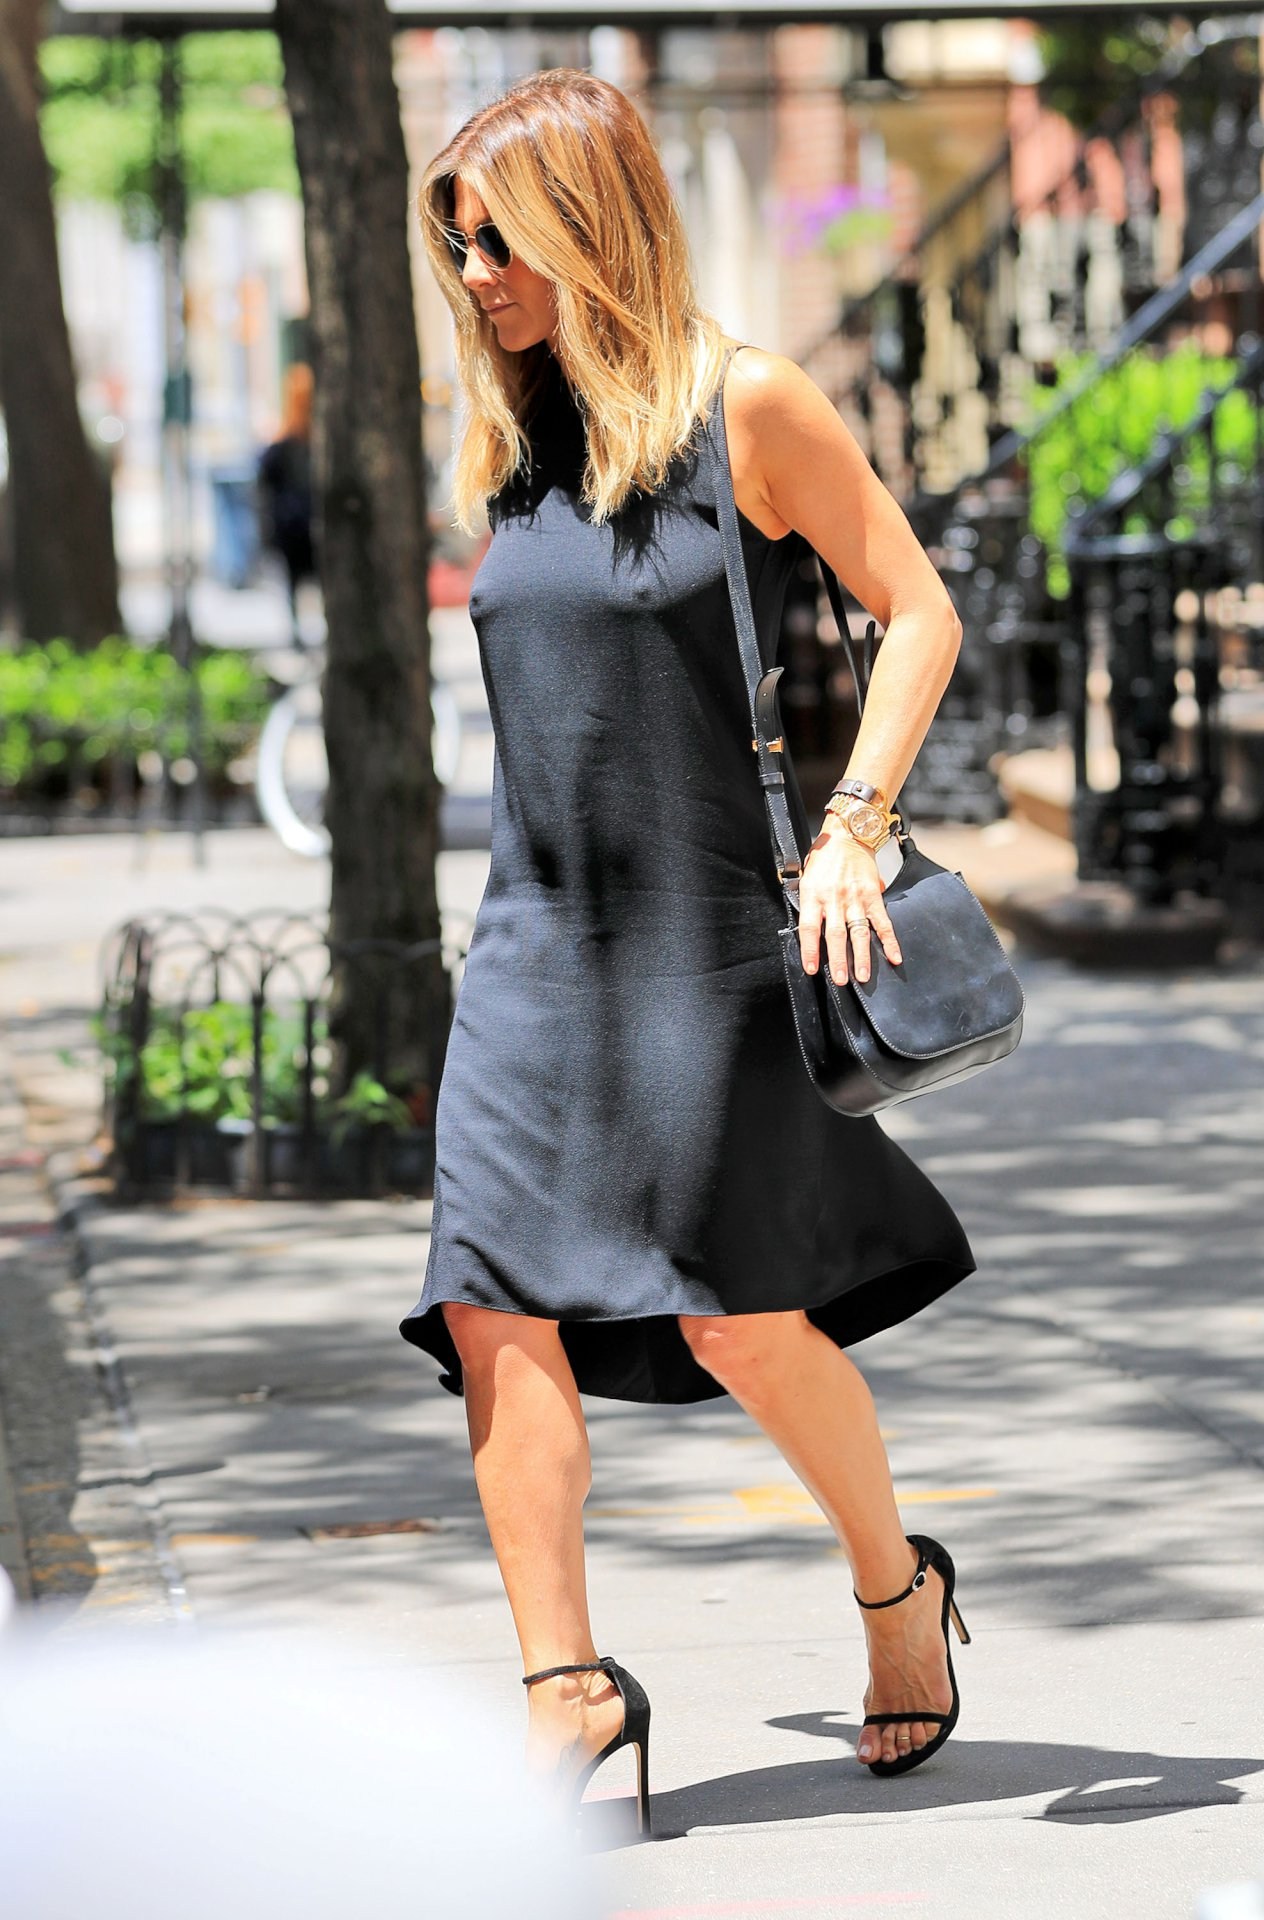 When Is Winter Break In New York Magazine The New York Times Magazine The New York Times Jennifer Aniston 9 Hot Celebs Home